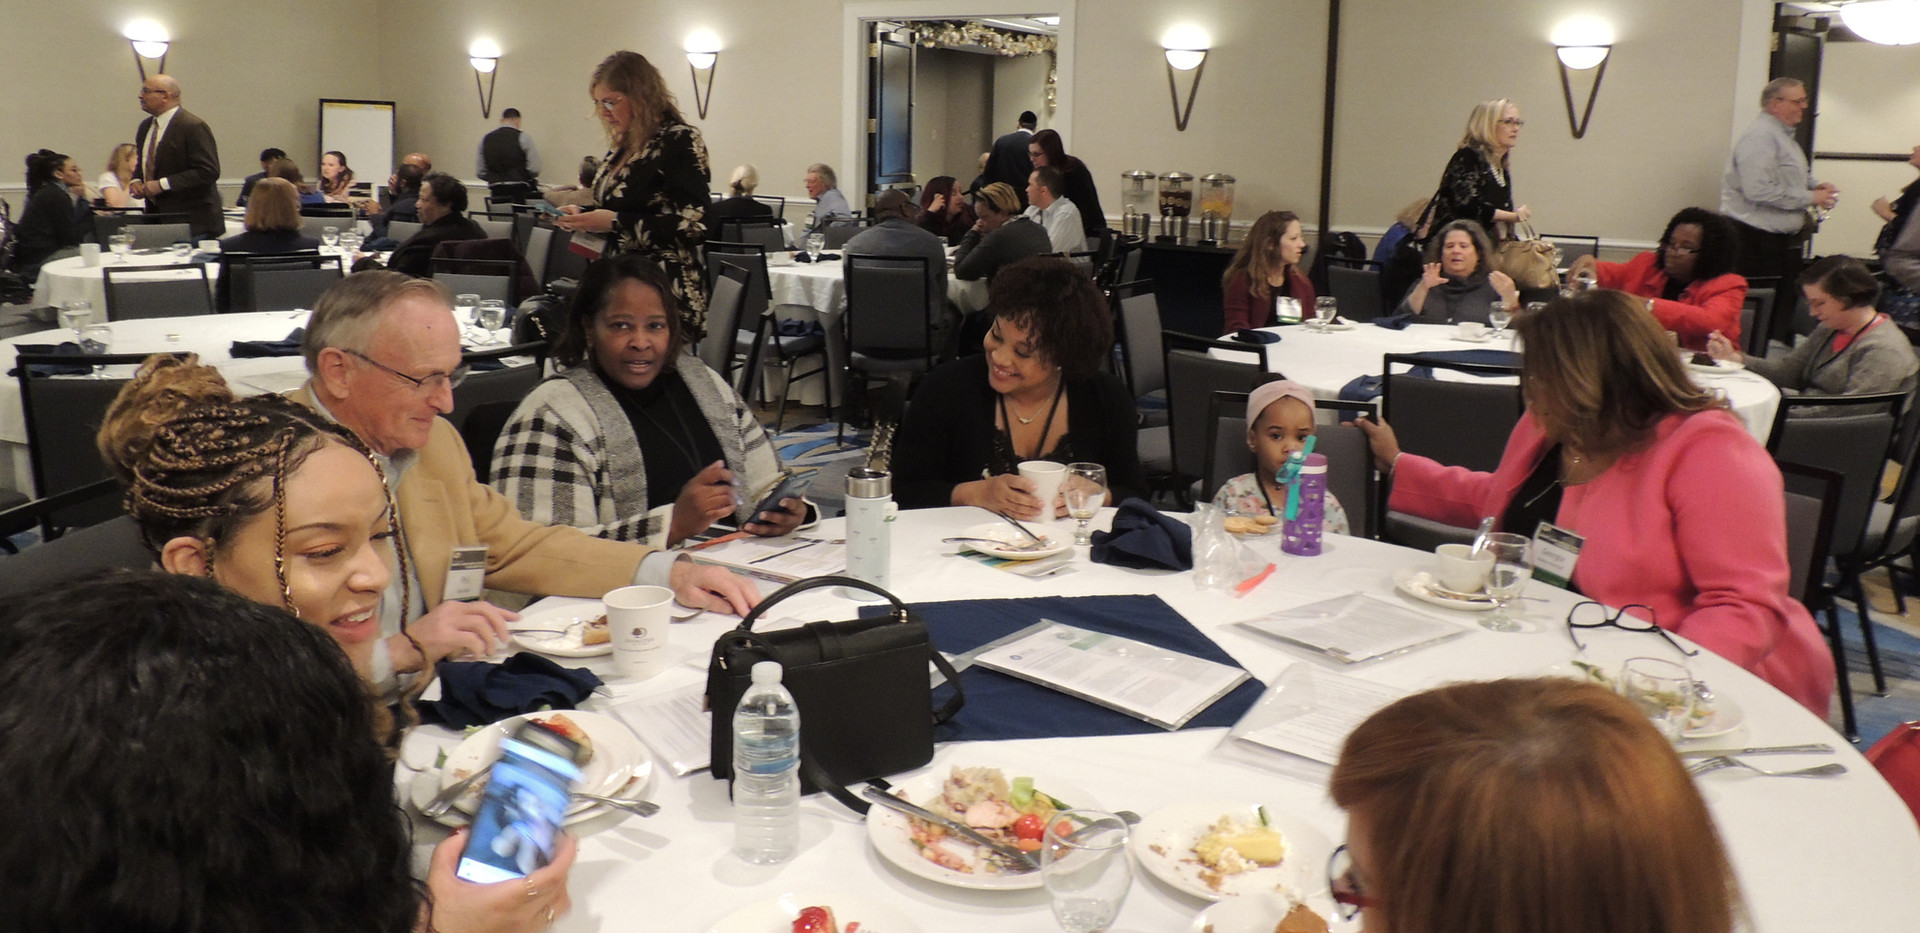 2018 Convention Networking Lunch 003.JPG